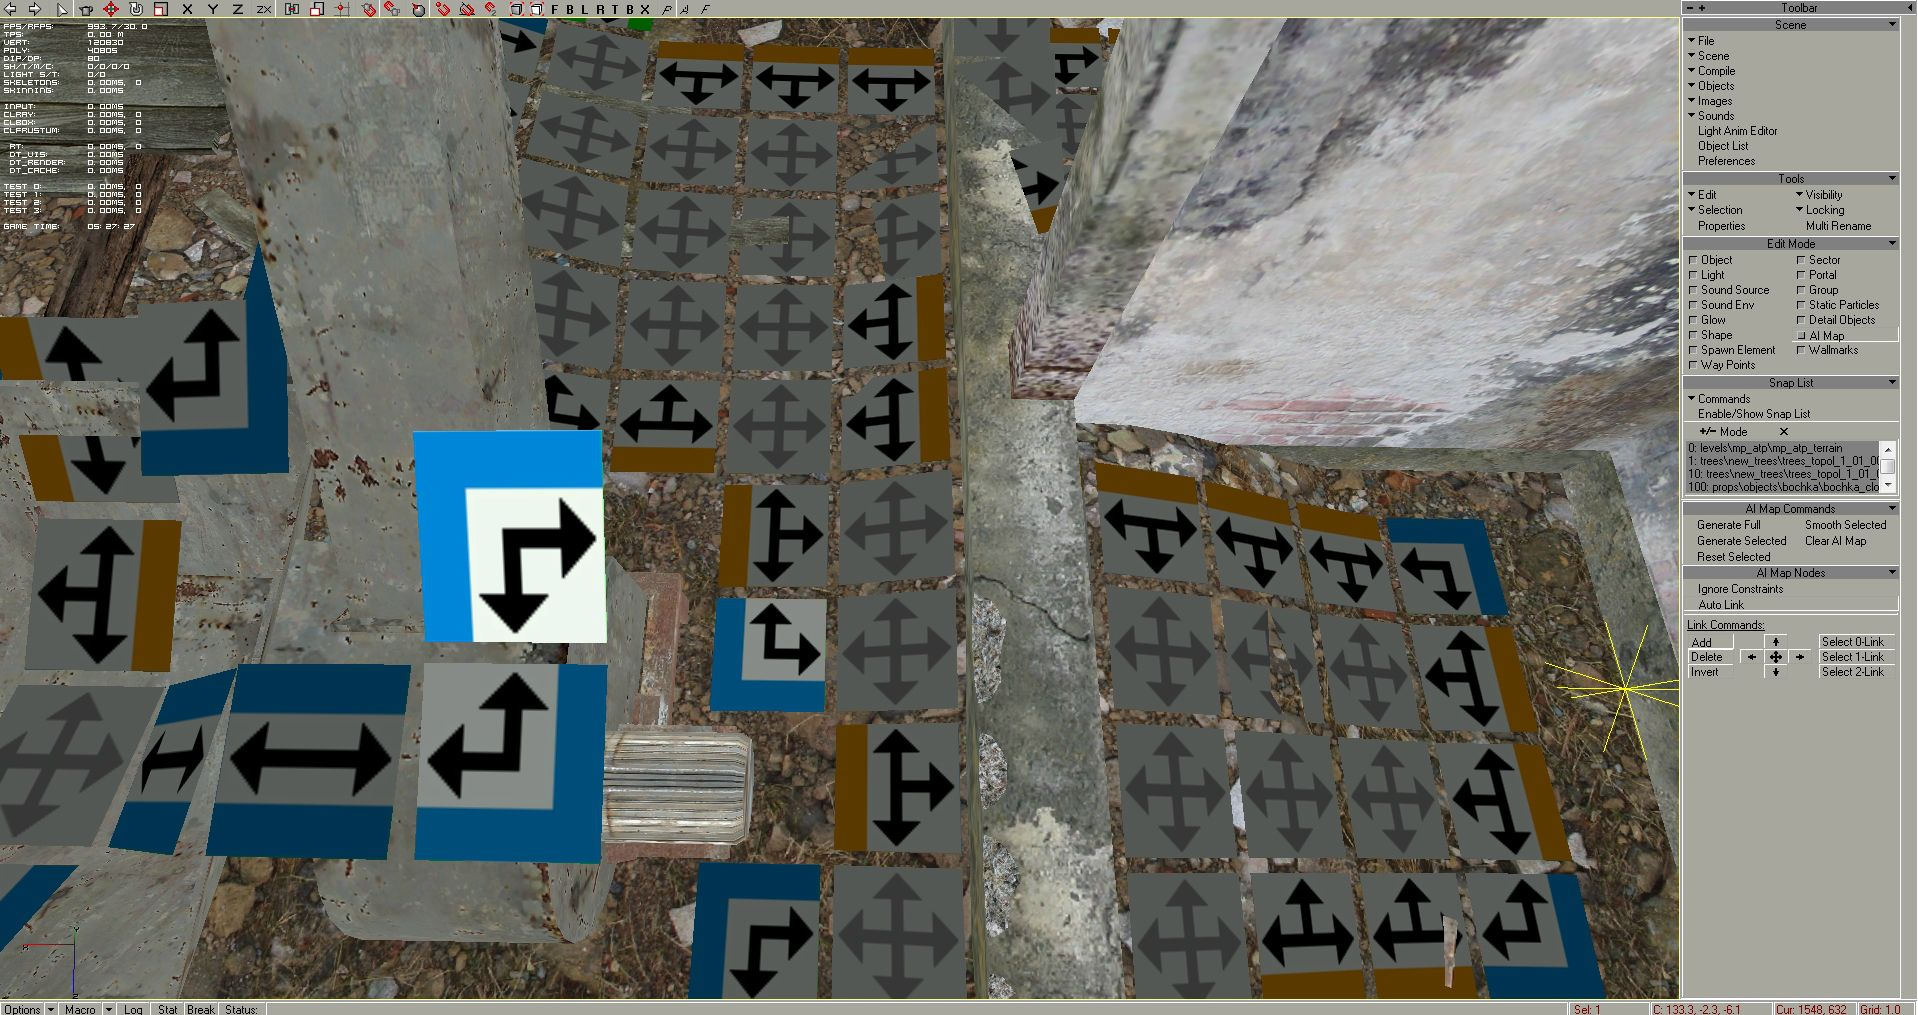 ... and again, the ai node at upper level wants to connect to the ground, but it has no connection above, so I just deleted it again - plus I deleted all the ai nodes from the machine and done, it would be a weird place to walk for AI